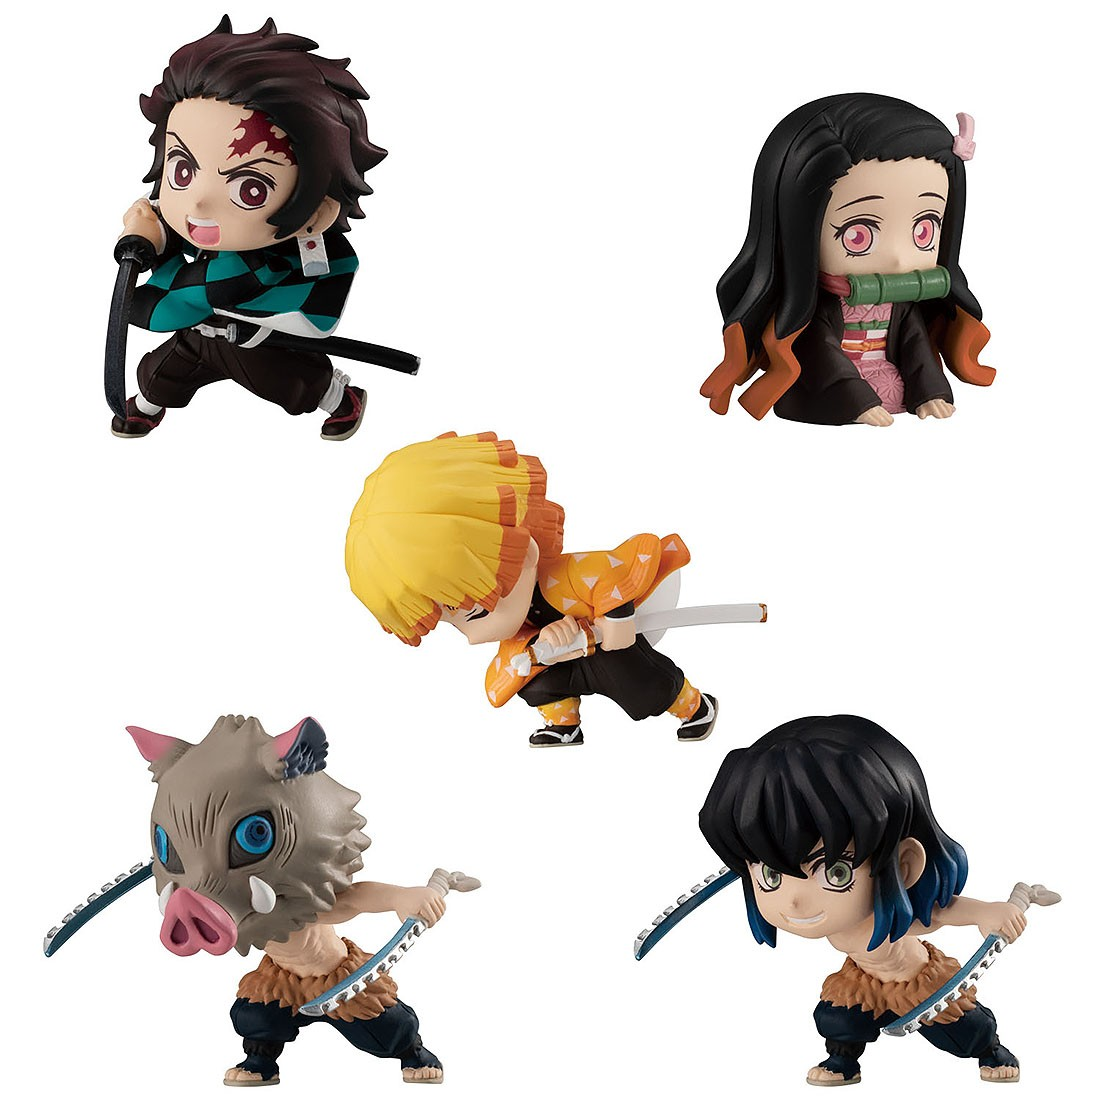 PREORDER - Bandai Demon Slayer Kimetsu no Yaiba Adverge Motion Set of 5 Figures (multi)